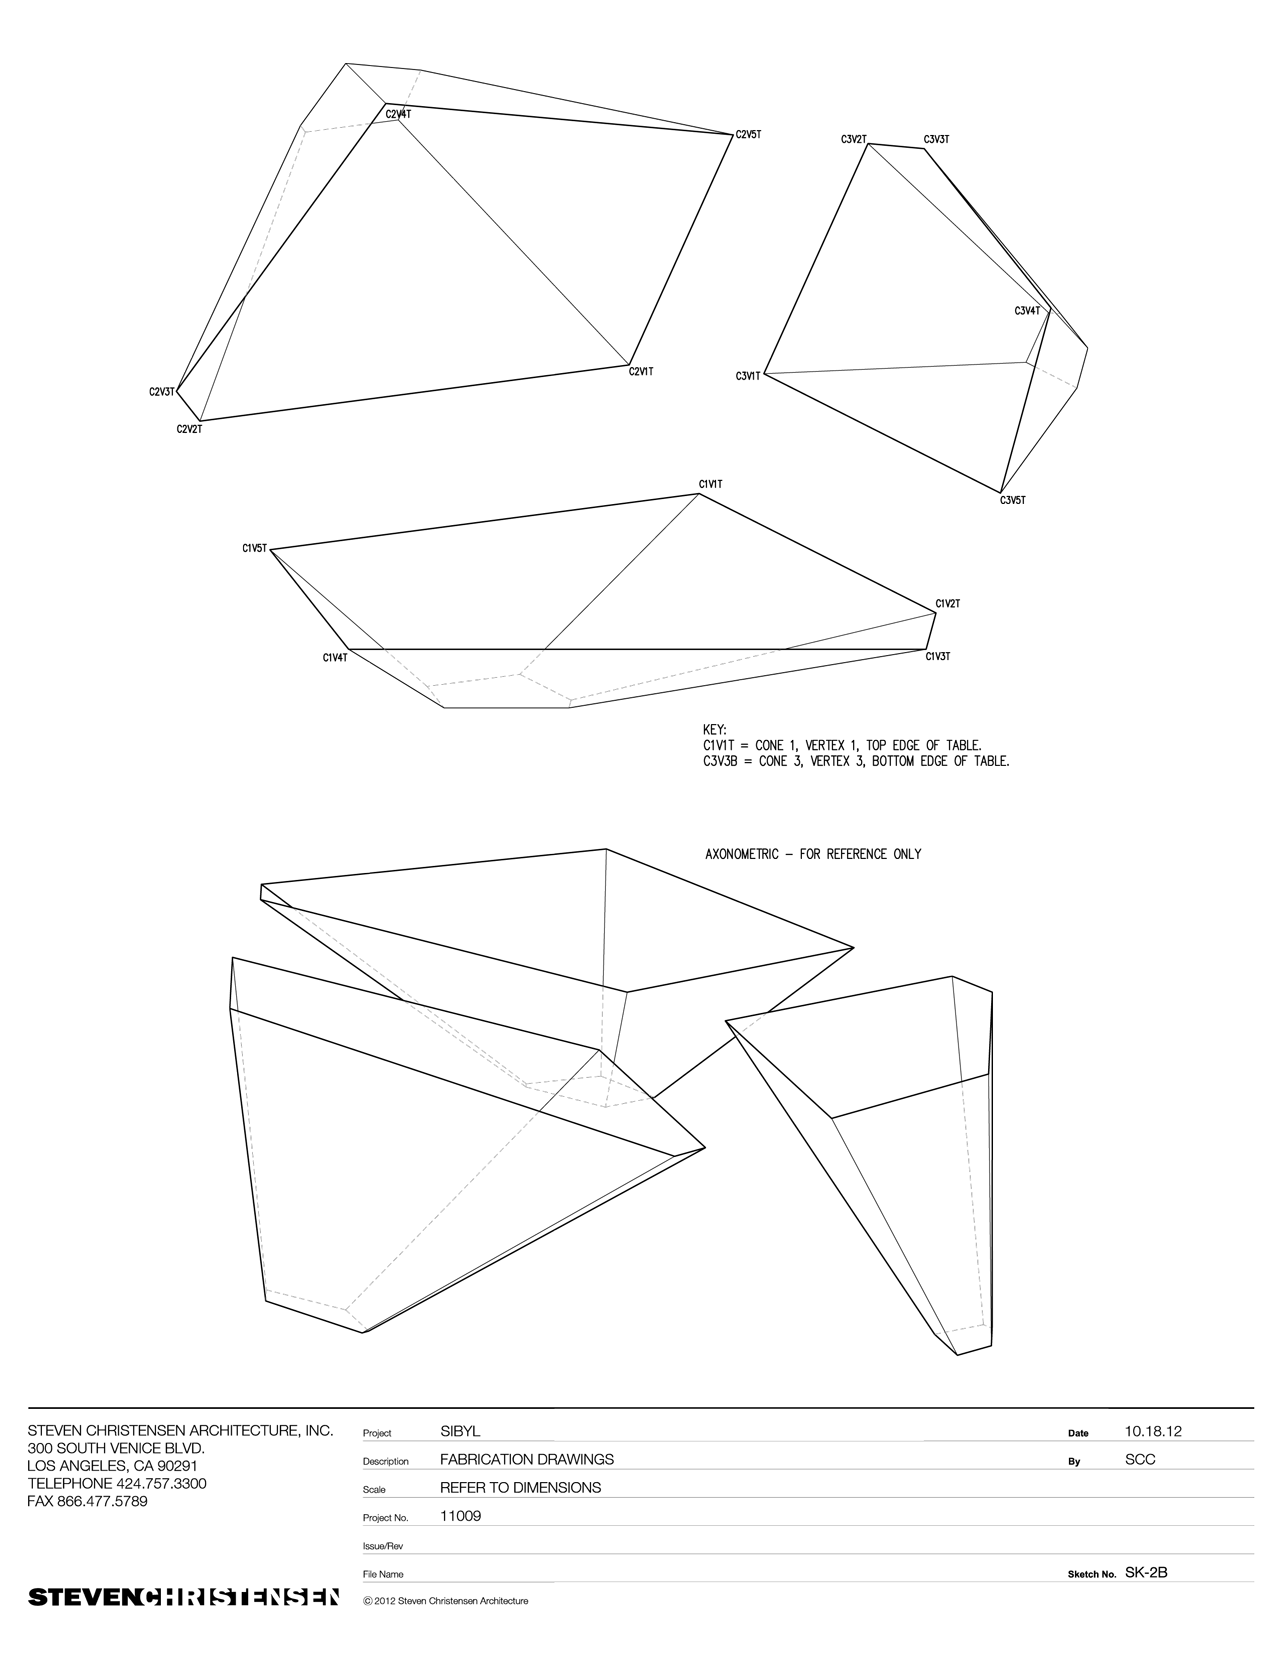 steven-christensen_sibyl_fabrication-drawings_2B_1280.png